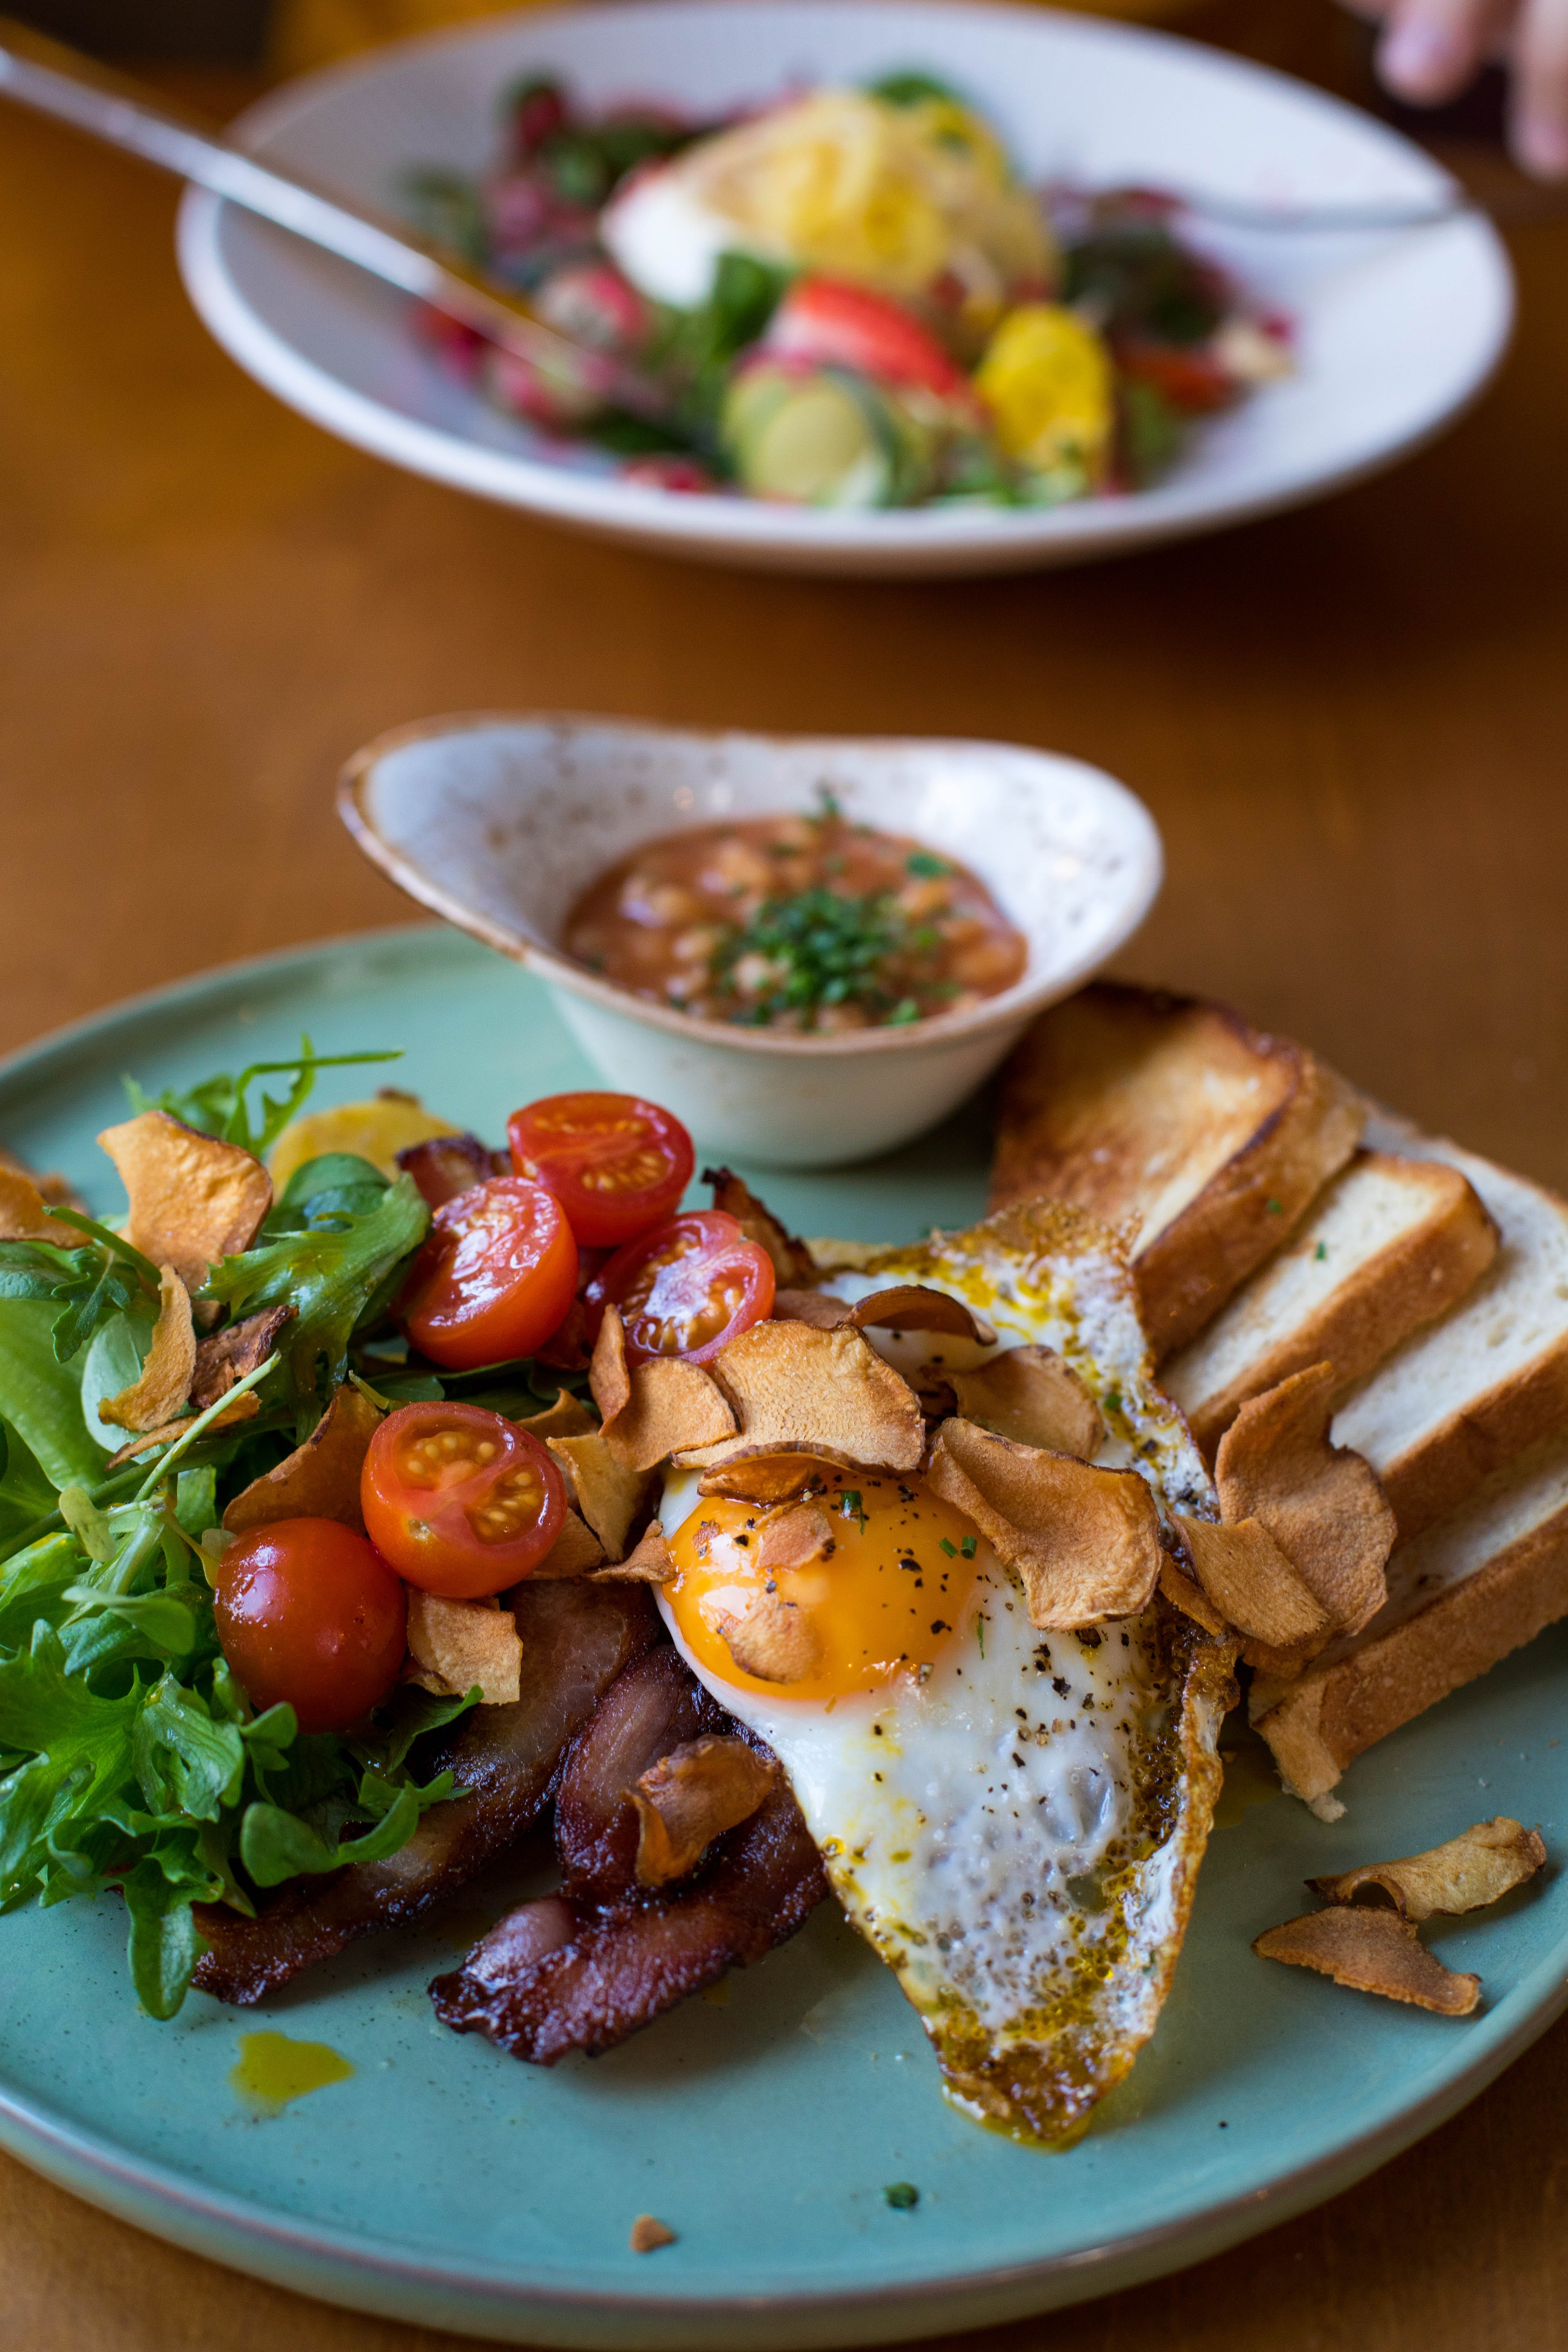 Tomatoes With Egg on Plate